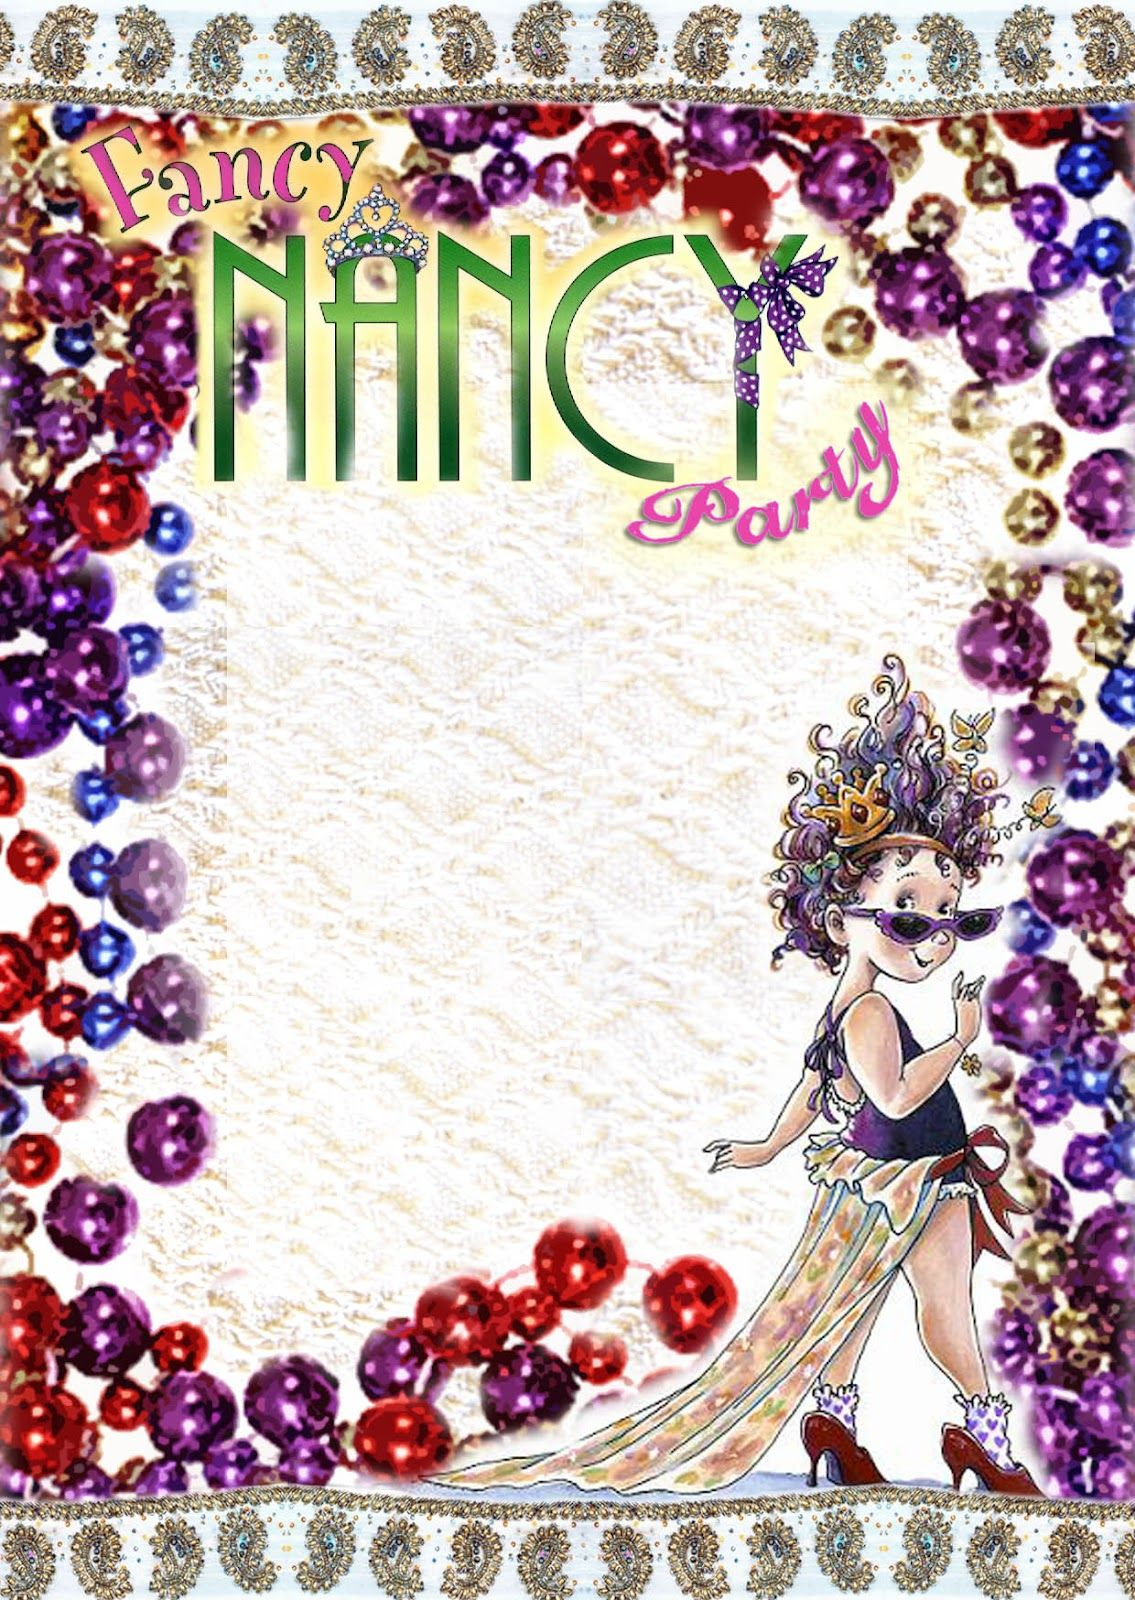 fancy nancy printable birthday invitations ; 3406d6ccc1403a7af9f123650787aa11